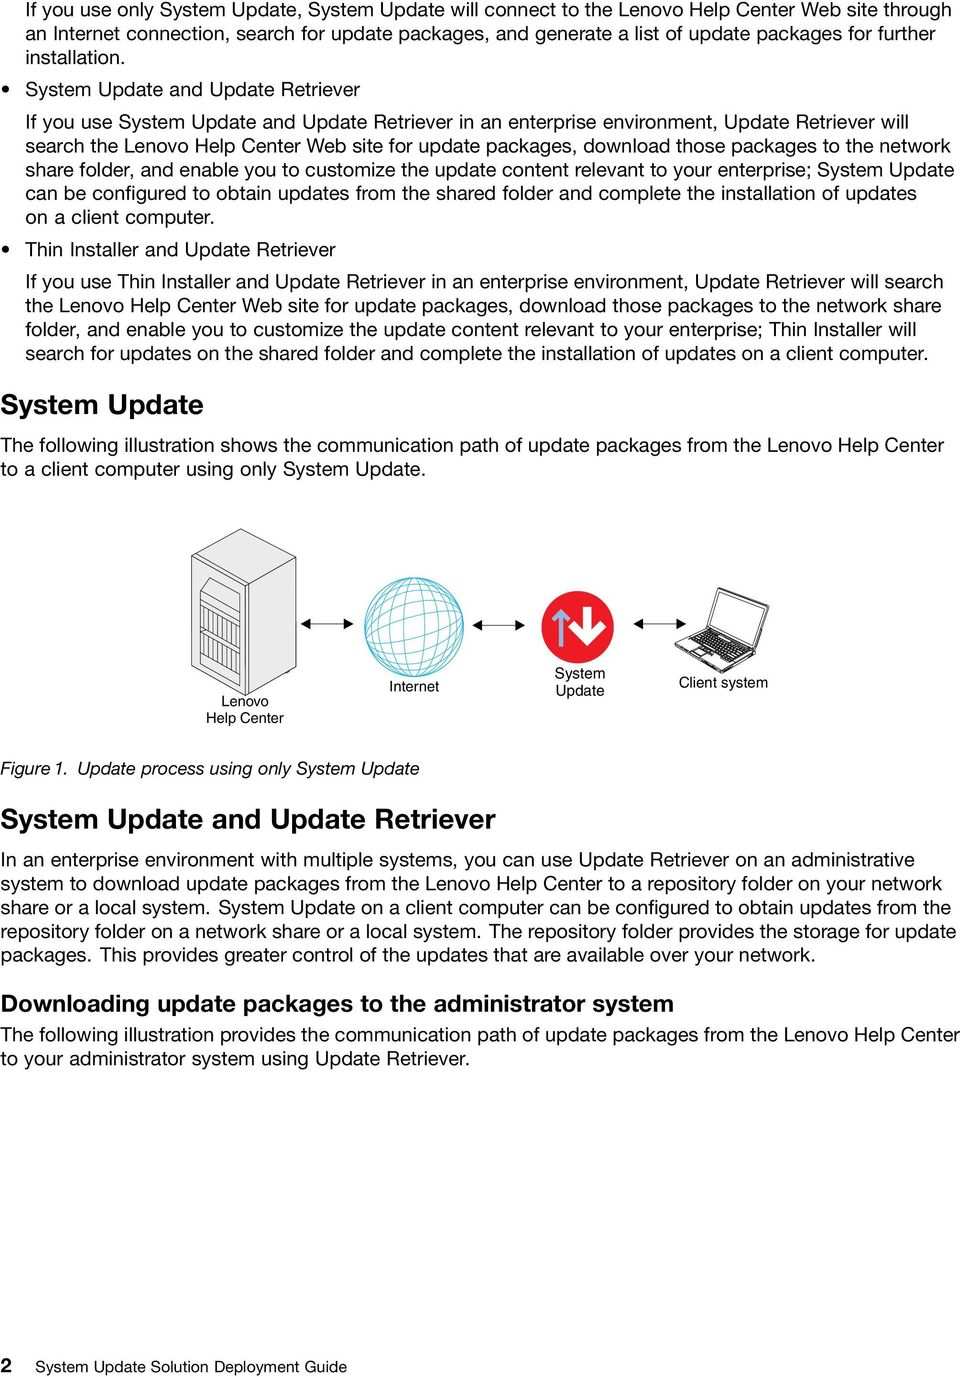 System Update Solution Deployment Guide - PDF